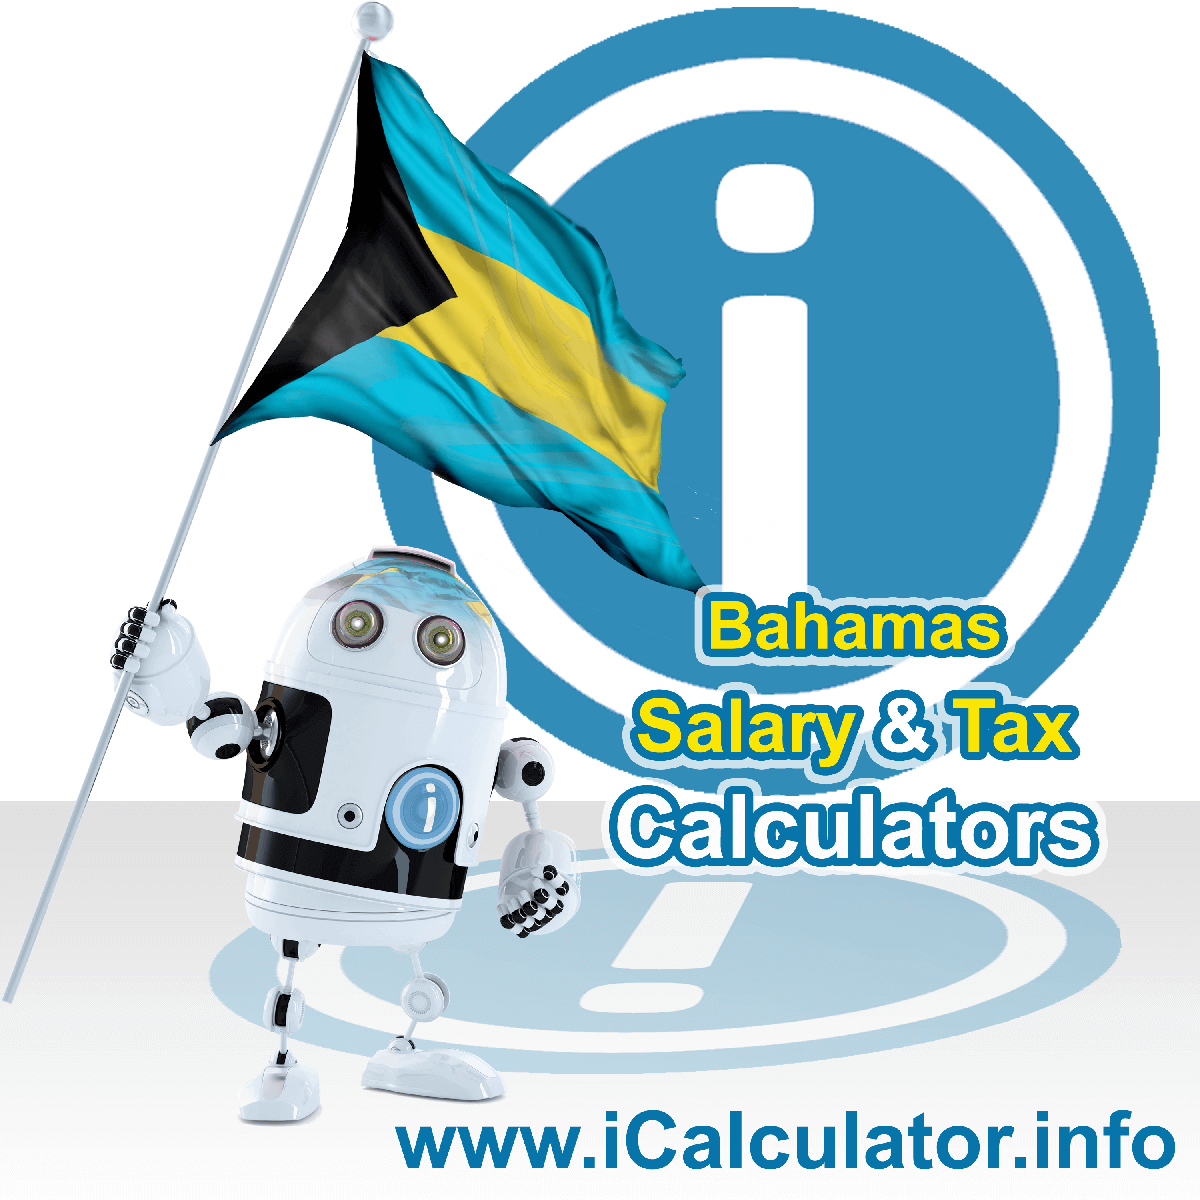 Bahamas Tax Calculator. This image shows the Bahamas flag and information relating to the tax formula for the Bahamas Salary Calculator